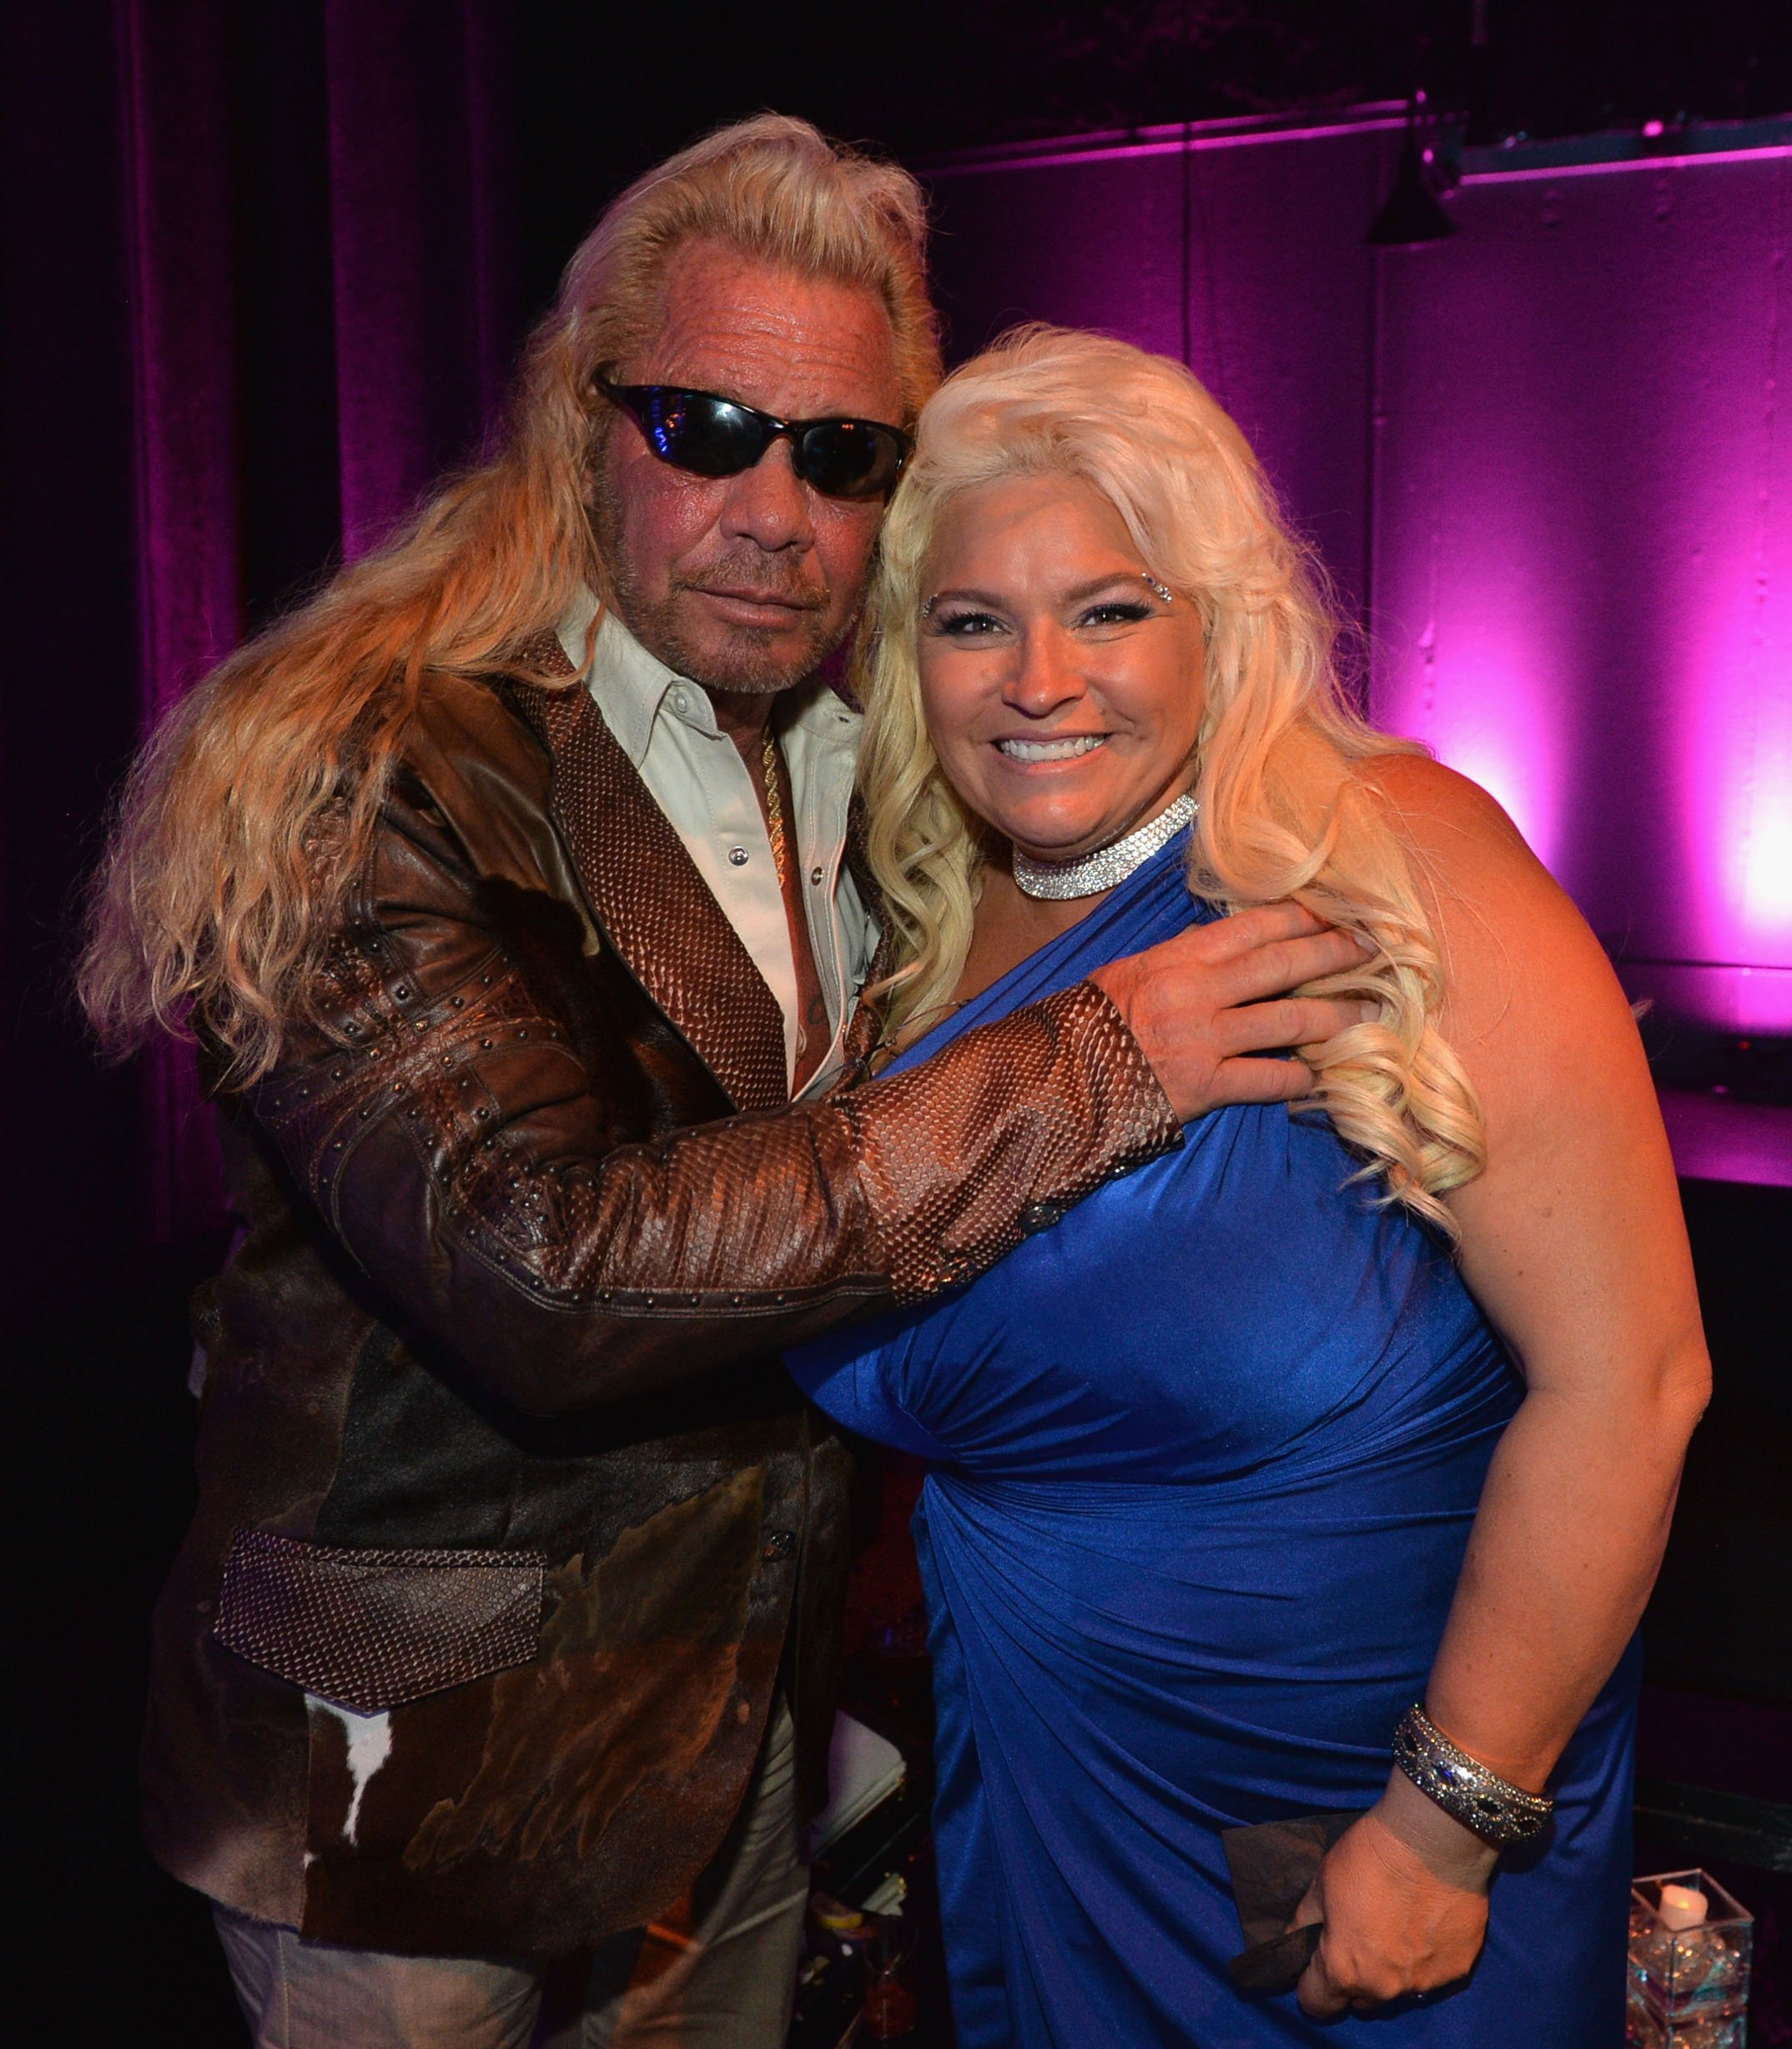 Duane and Beth Chapman at the CMT Music Awards - After Party at Rocketown on June 5, 2013 in Nashville, Tennessee   Photo: Getty Images